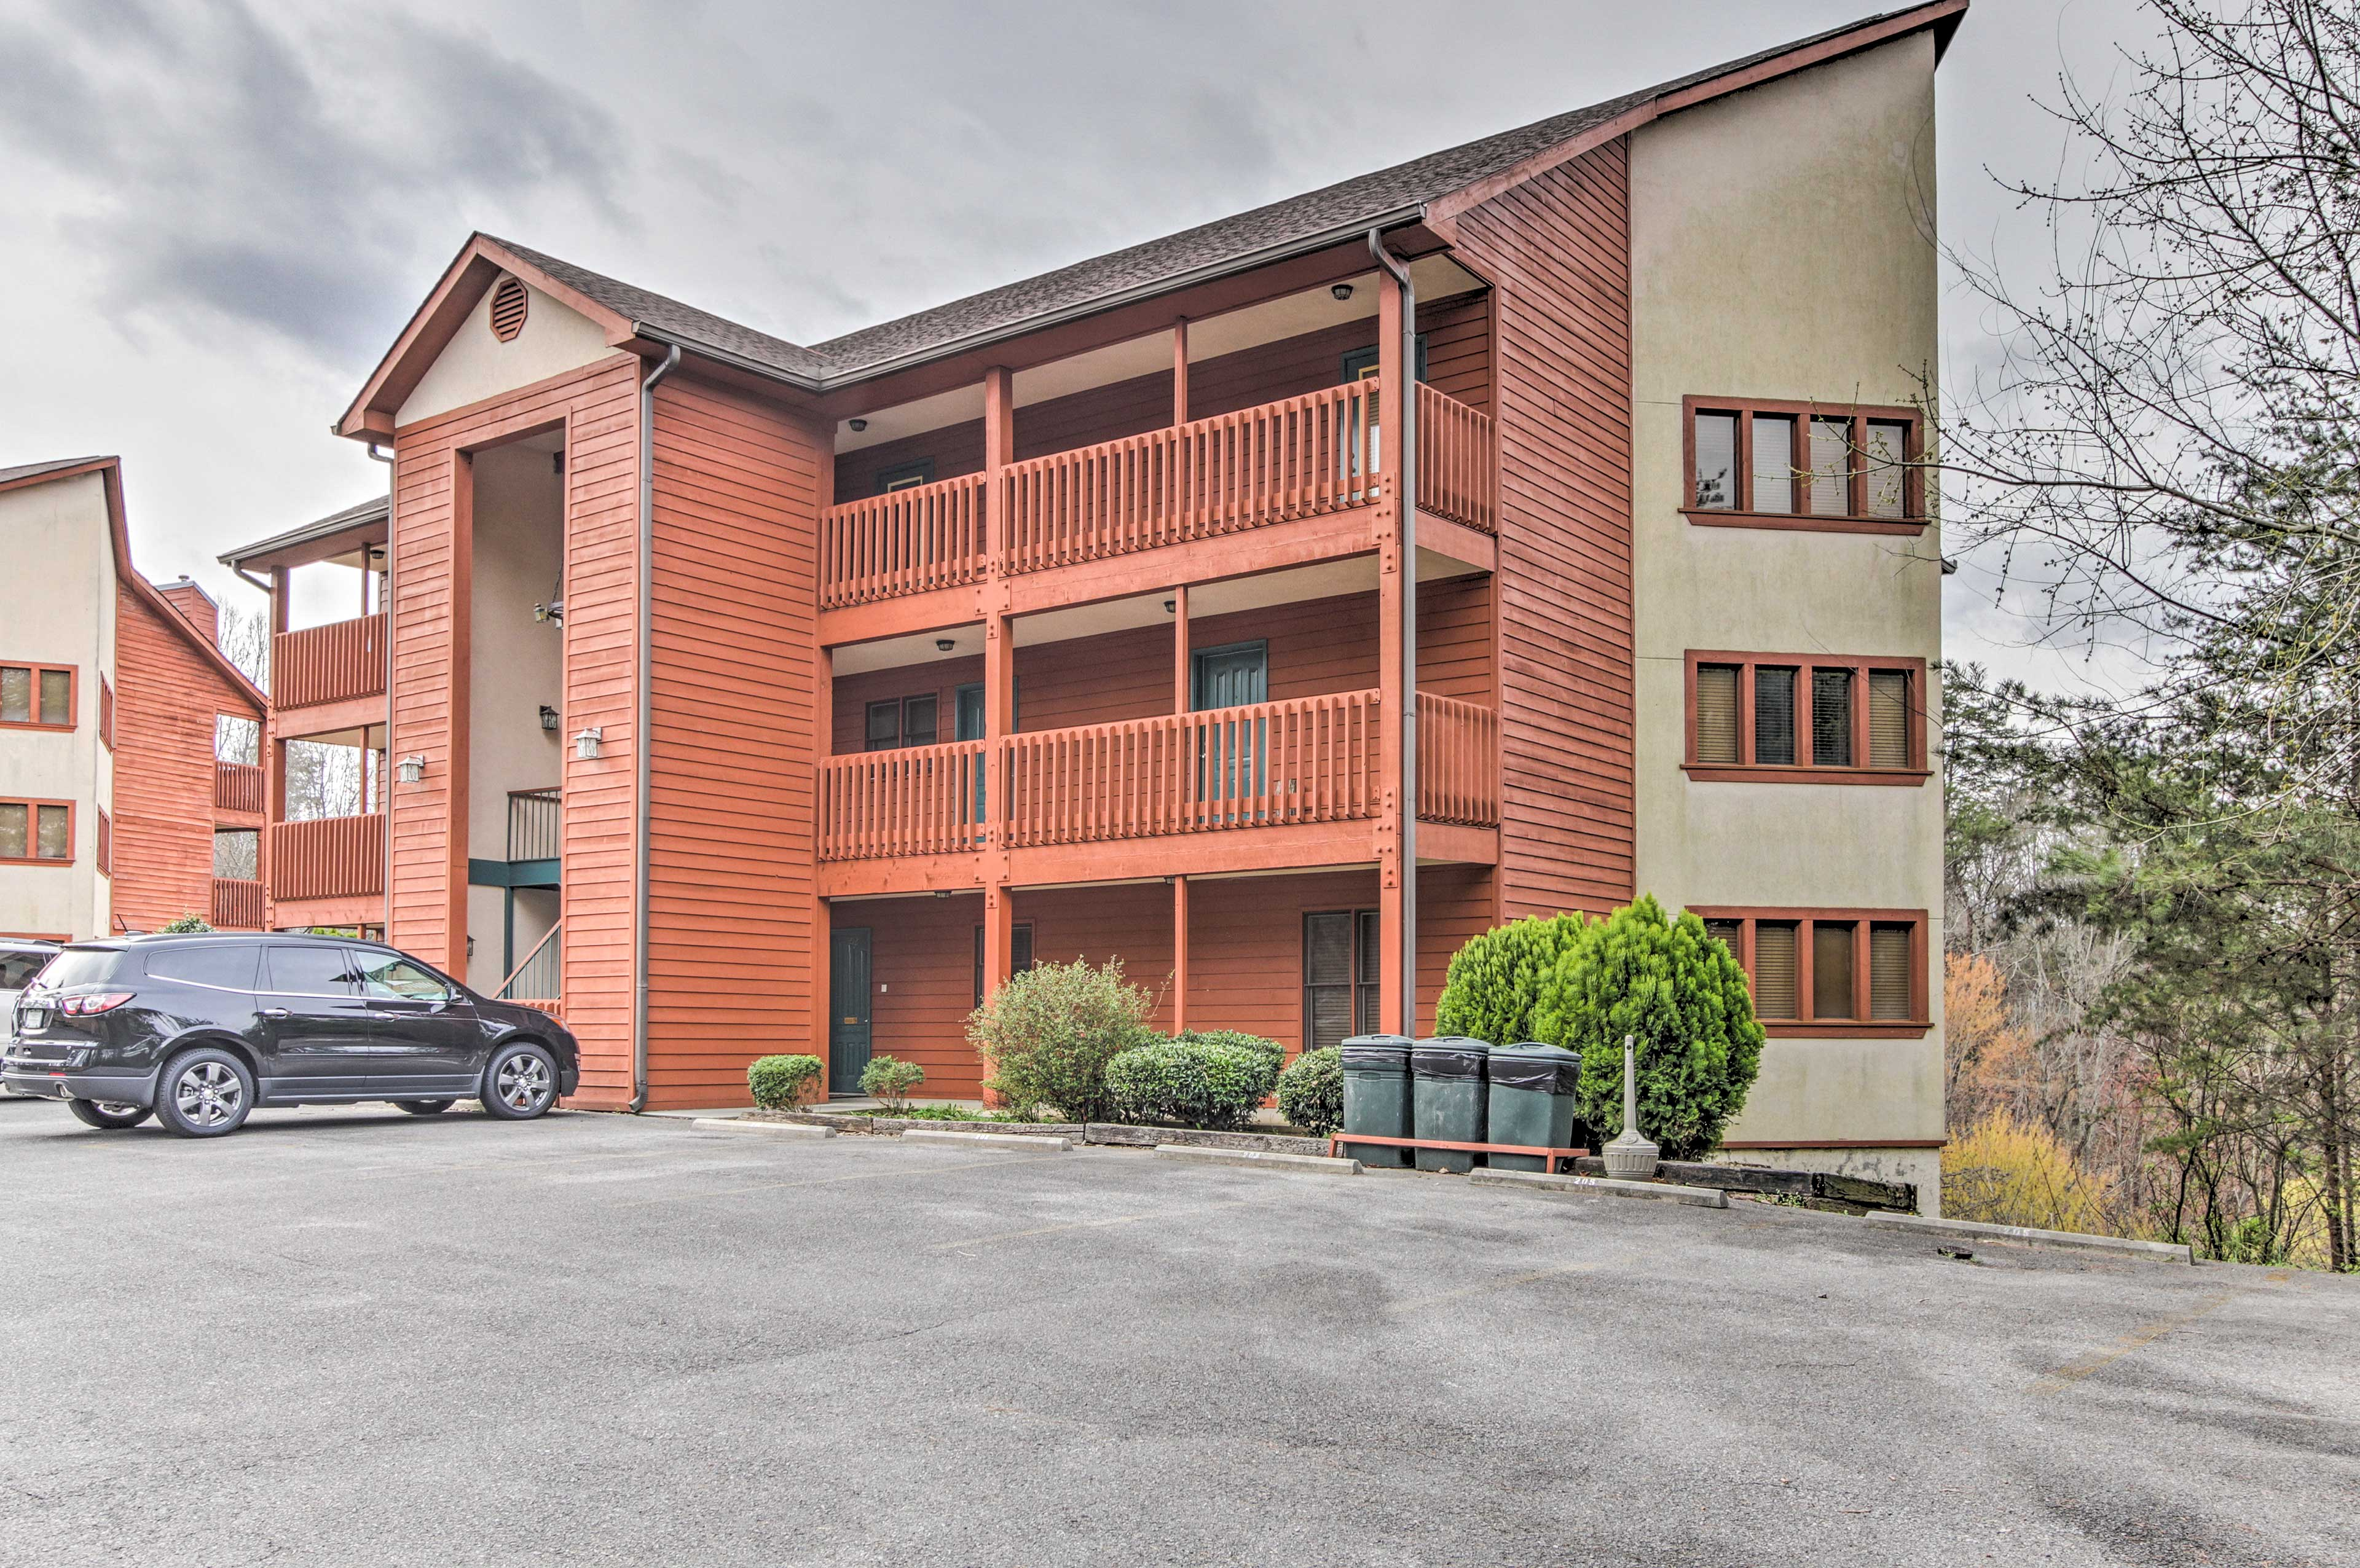 This complex boasts a location next door to Dollywood!